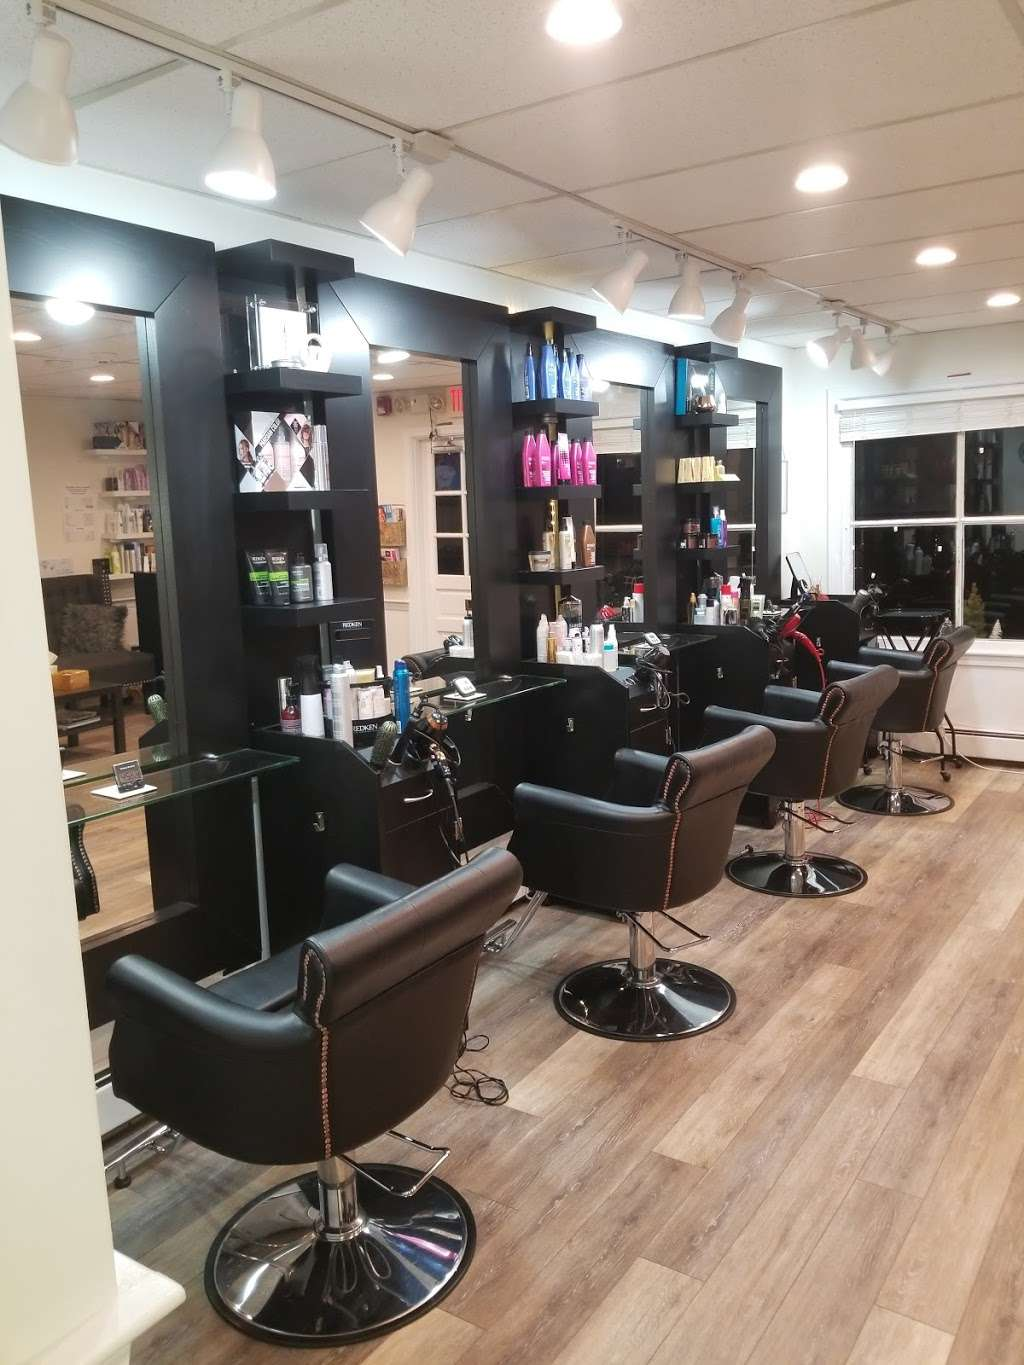 Charles European Hair Design 2 - hair care  | Photo 3 of 10 | Address: 545 High St, Westwood, MA 02090, USA | Phone: (781) 329-0011